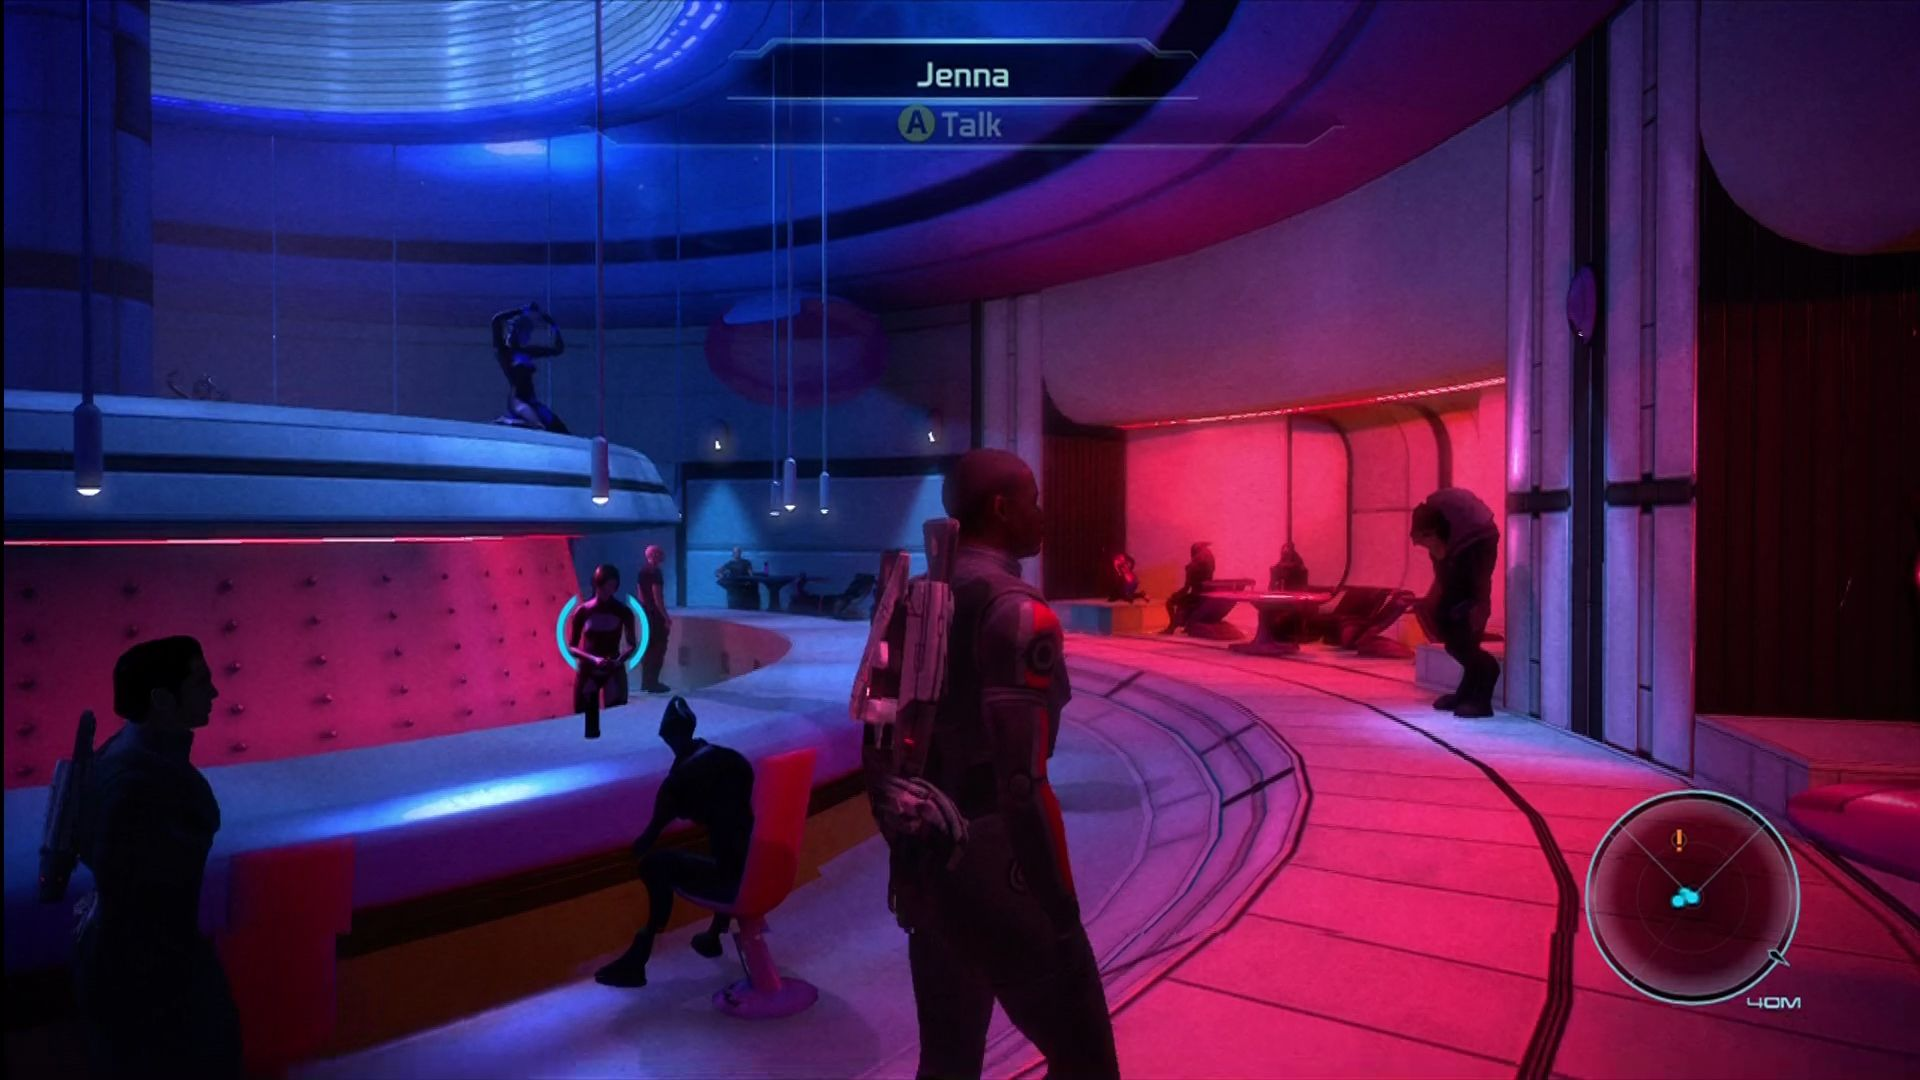 Mass Effect Xbox 360 Looking for informants in a space nightclub.